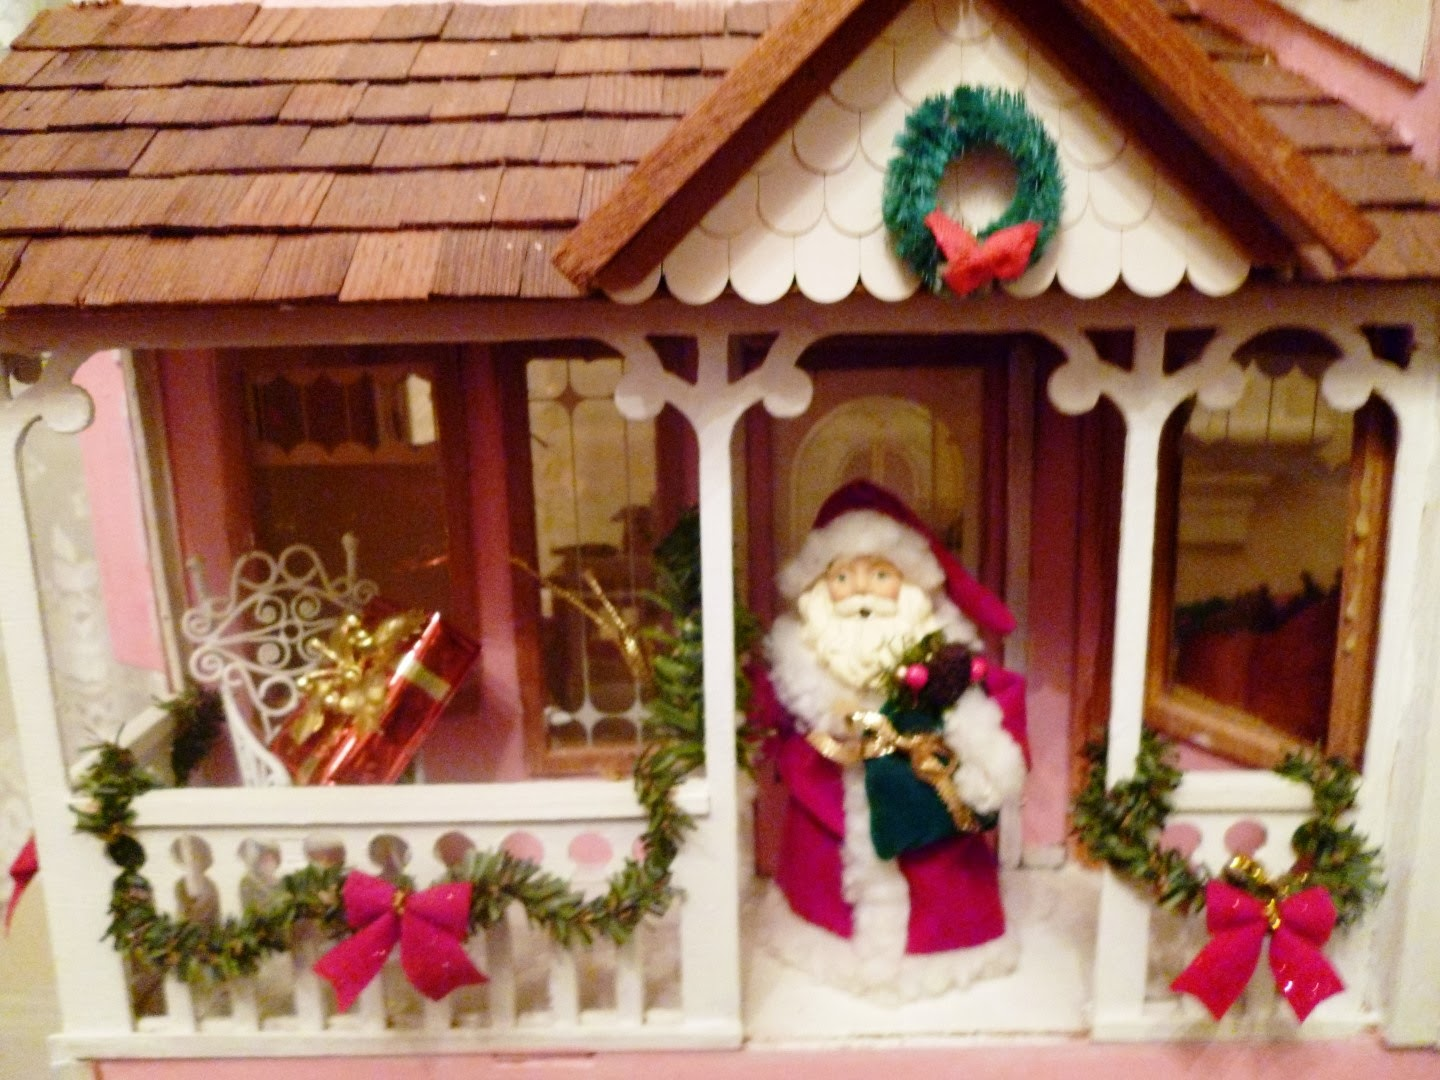 dollhouse decorating - Dollhouse Christmas Decorations